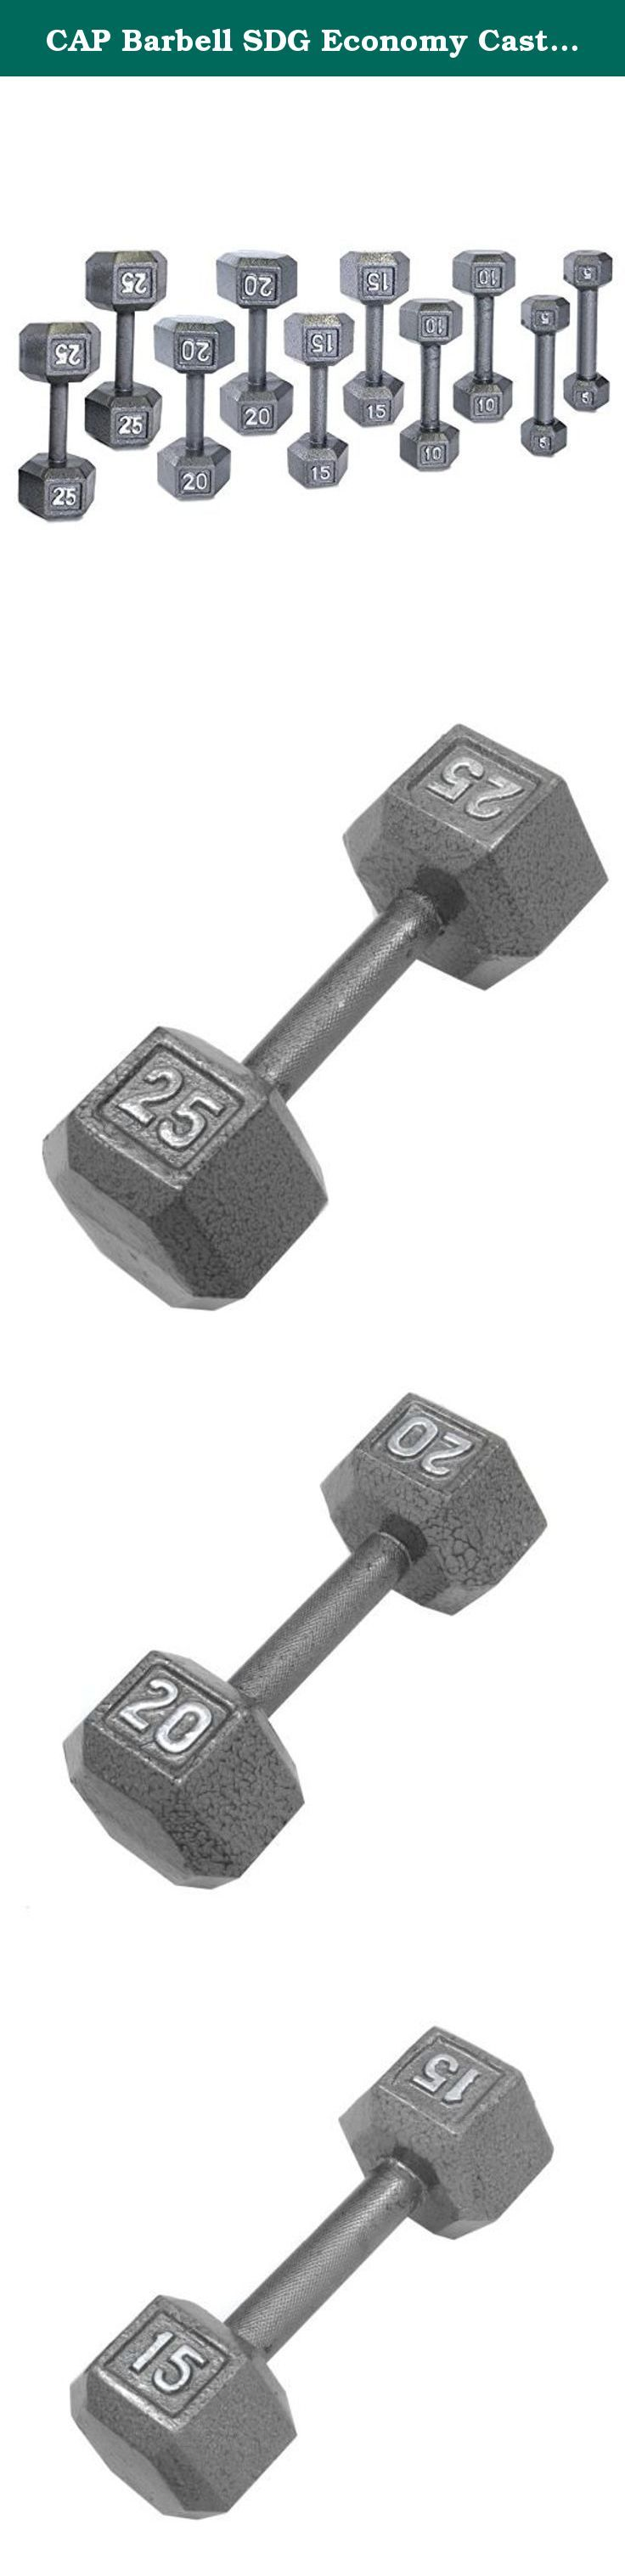 CAP Barbell SDG Economy Cast Iron Hex Dumbbell Set - 5, 10, 15, 20, 25 lbs (5 pairs) - Beginner Weight Training Set. Economy Cast Iron Hex Dumbbell Sets from CAP Barbell - Hex dumbbell sets are often the perfect dumbbell choice for home gym and garage gym use. They are economical and space efficient and for a lot of people that is the most important criteria when purchasing dumbbells for home use. Hexagonal dumbbell heads are non-rolling when set down on the floor or racks. Cast iron…